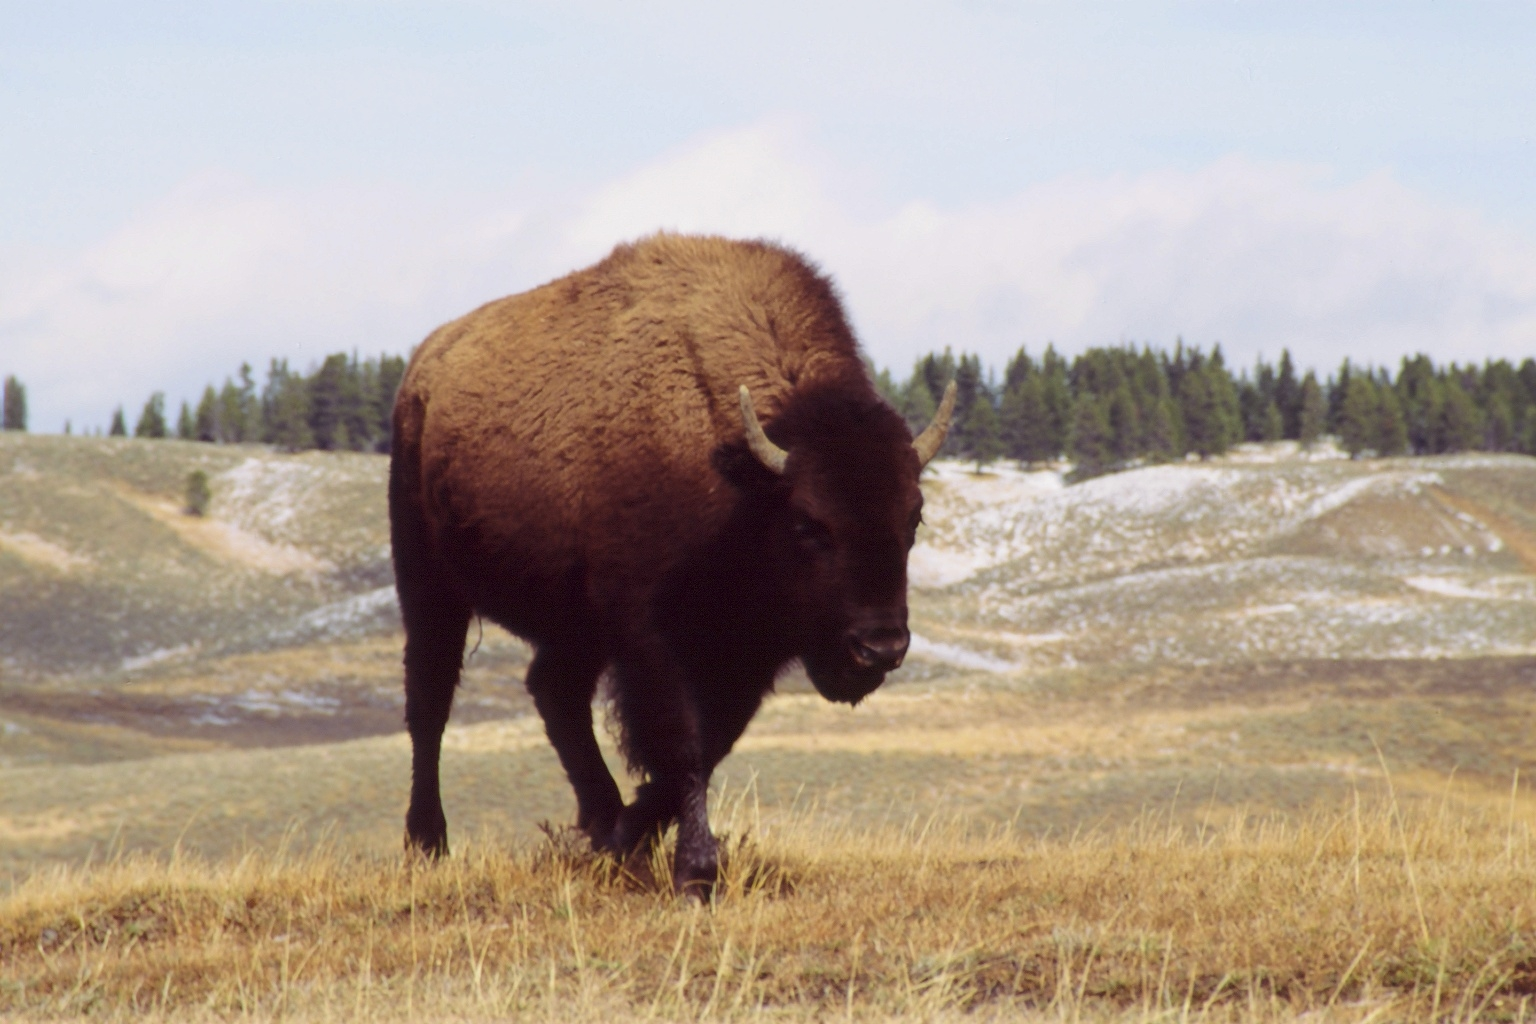 Photo © P. Morillon Horizons - Bison